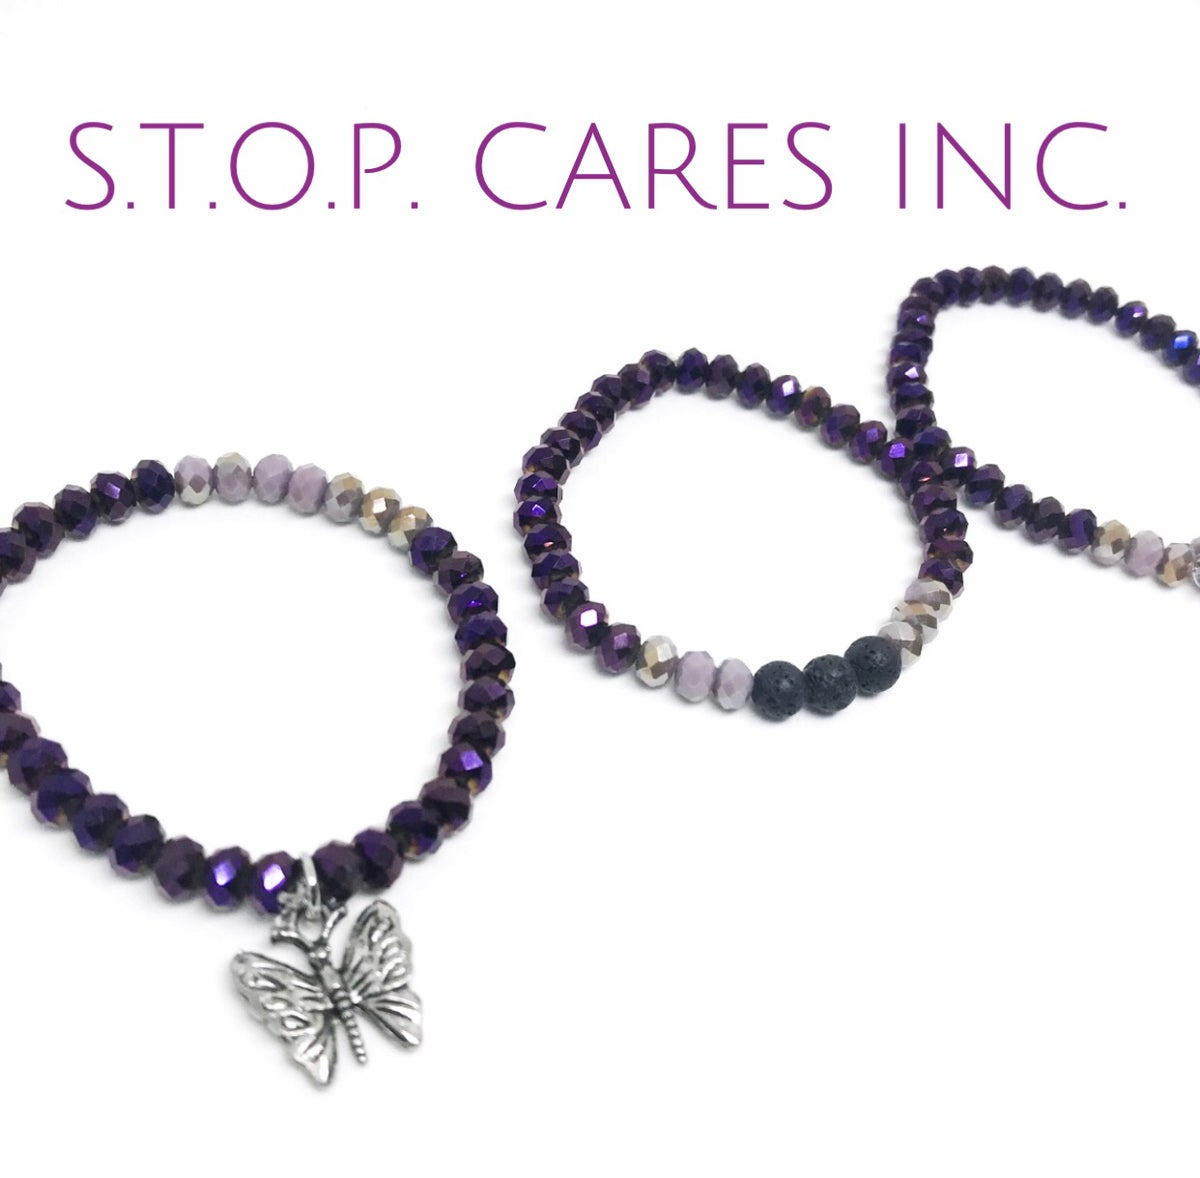 Image of S.T.O.P. Cares Inc. Bead Bracelet